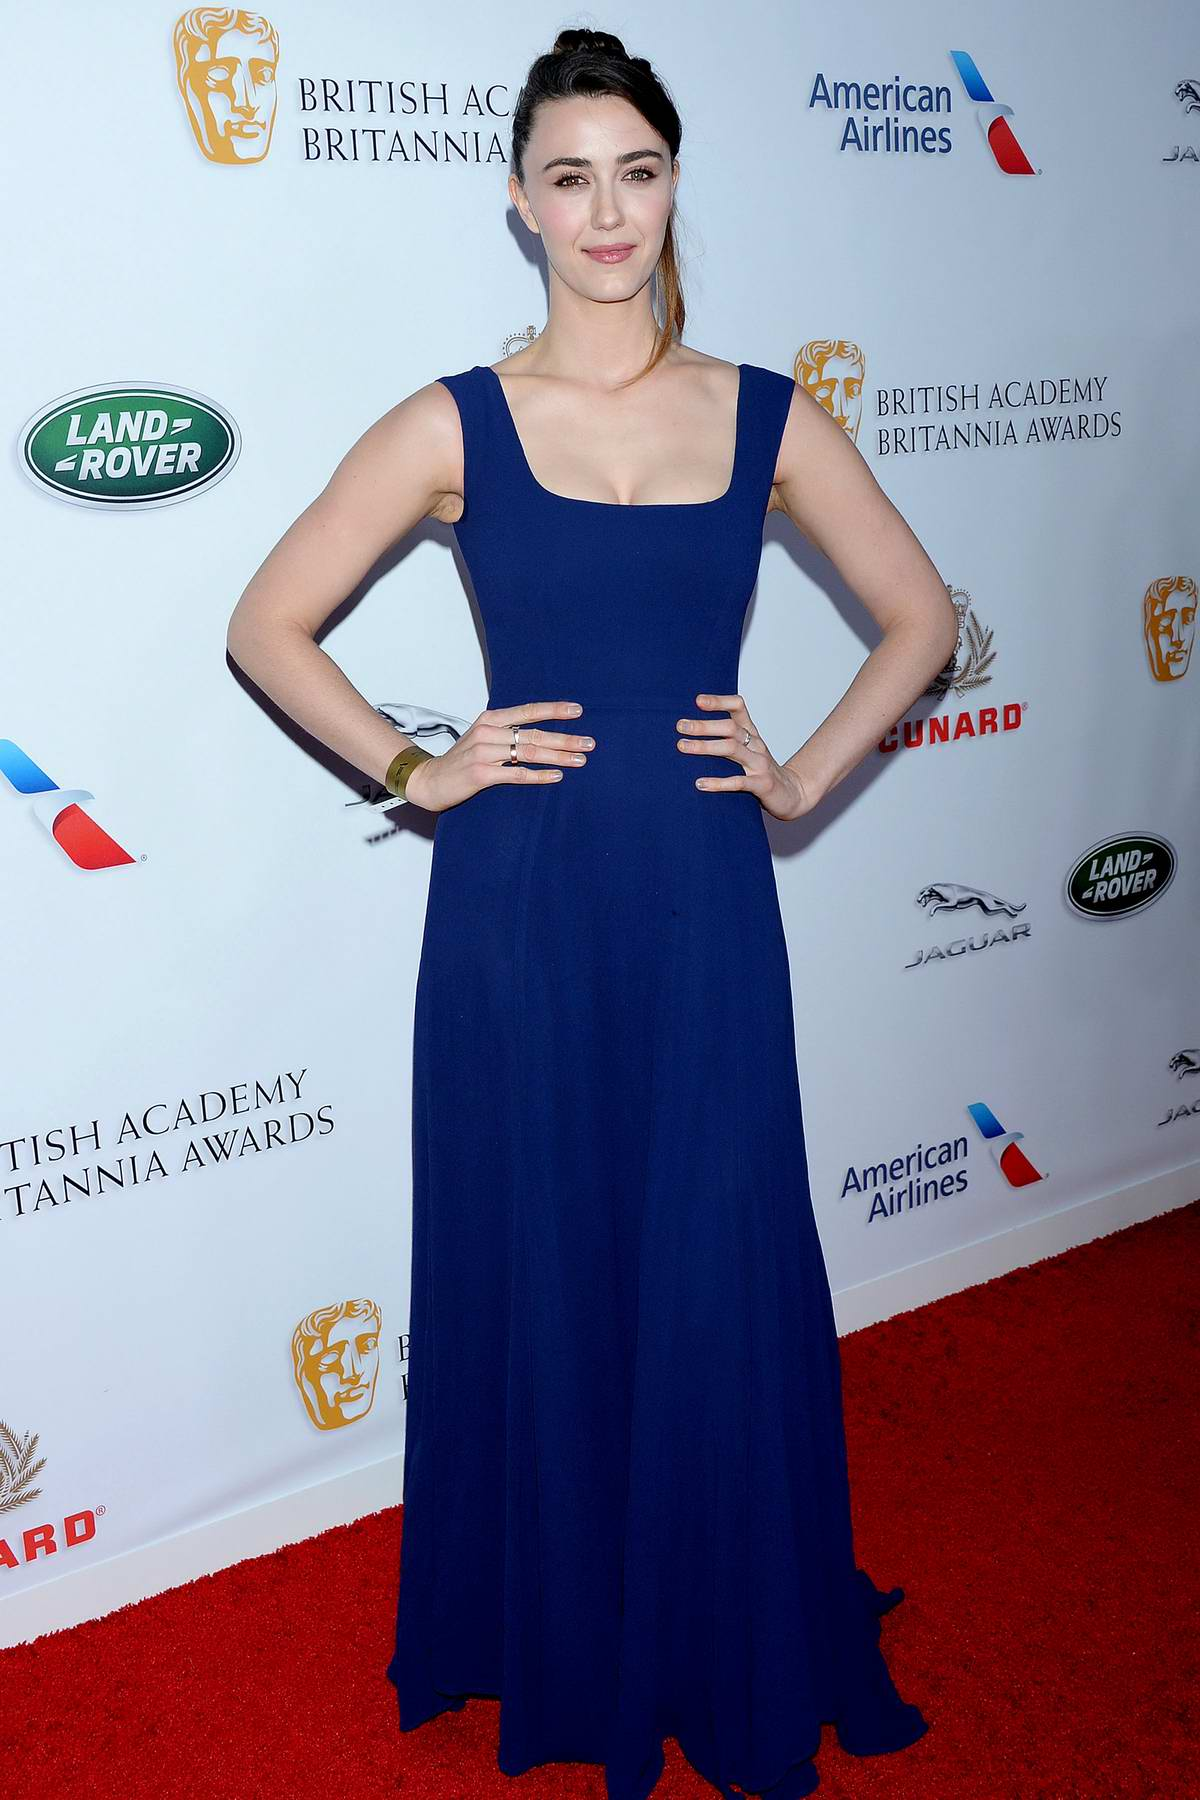 Madeline Zima attends the British Academy Britannia Awards 2018 at The Beverly Hilton Hotel in Los Angeles